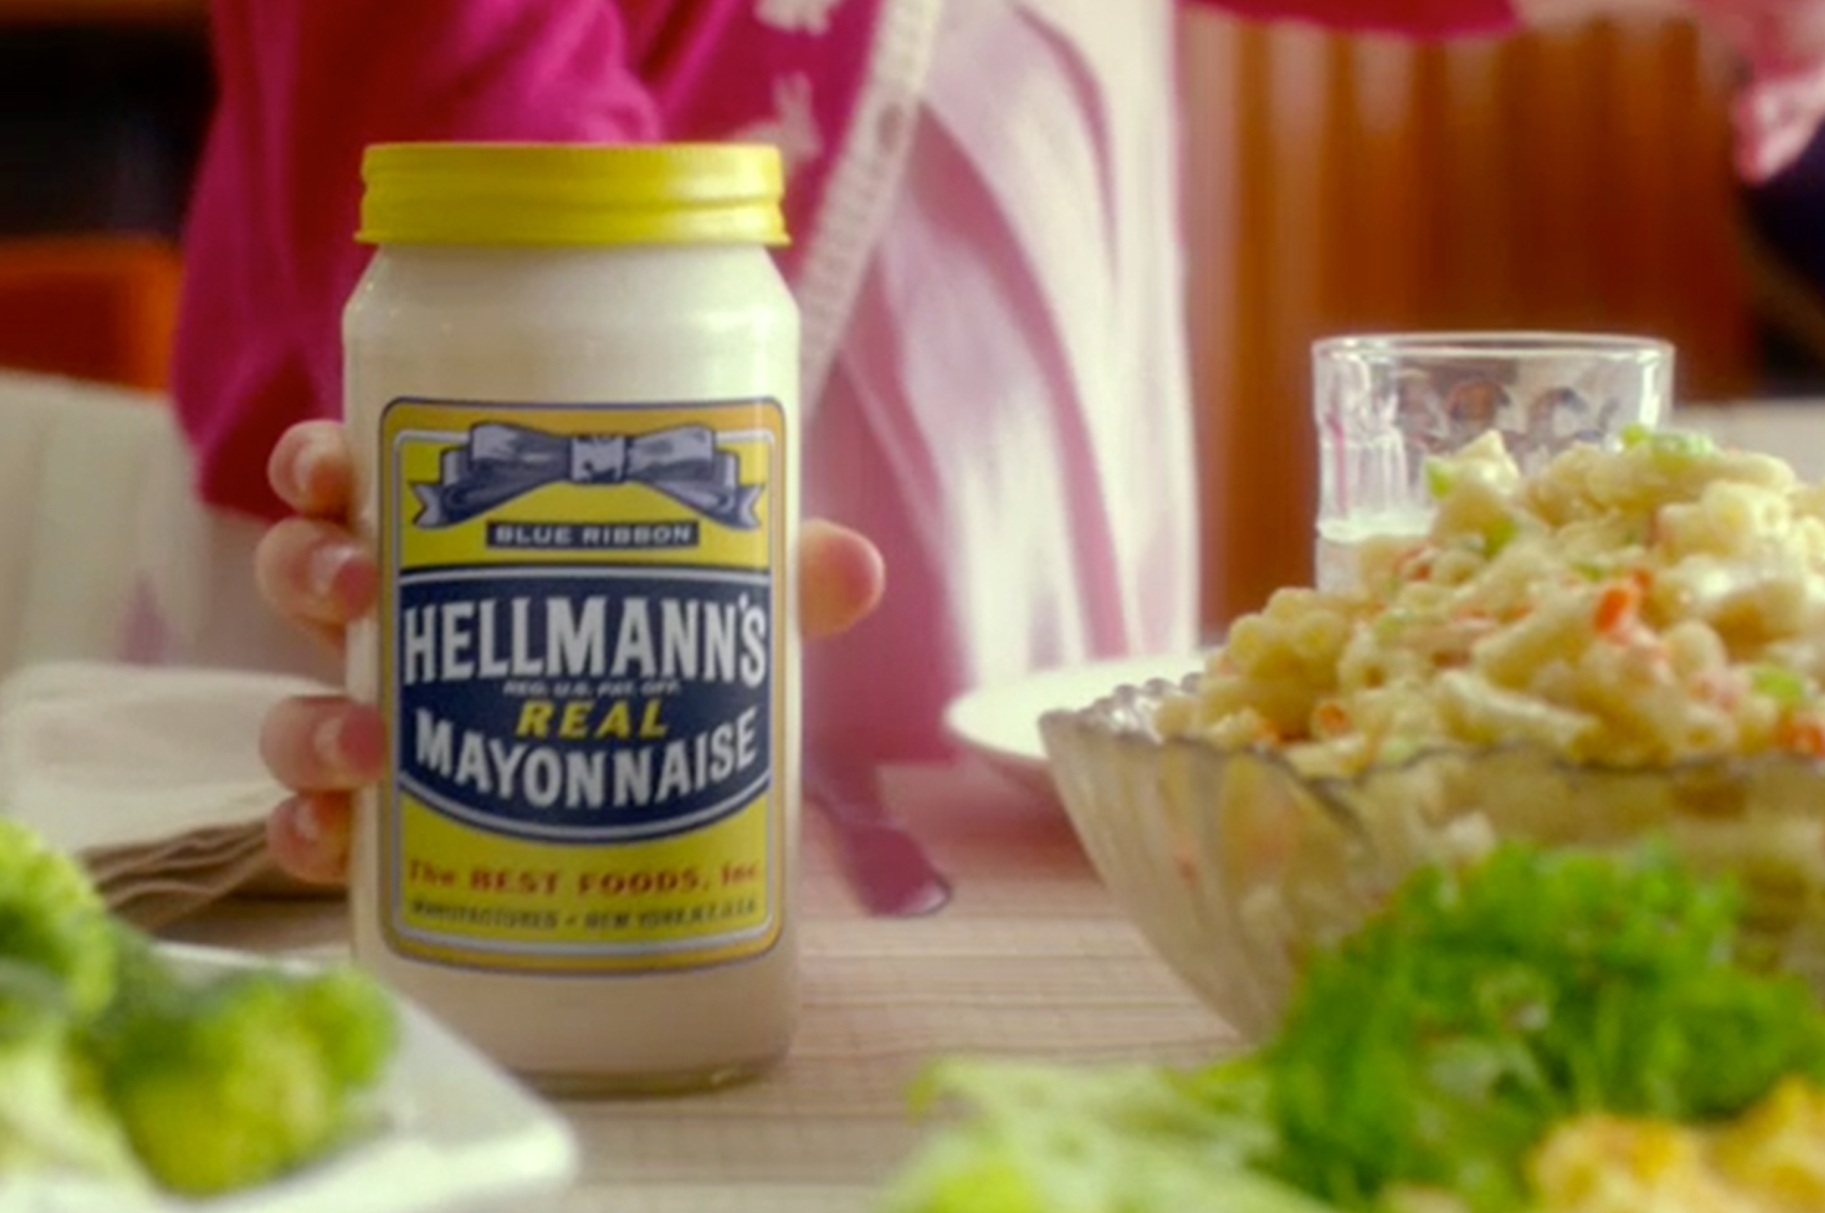 Hellmann's 100—year commercial still